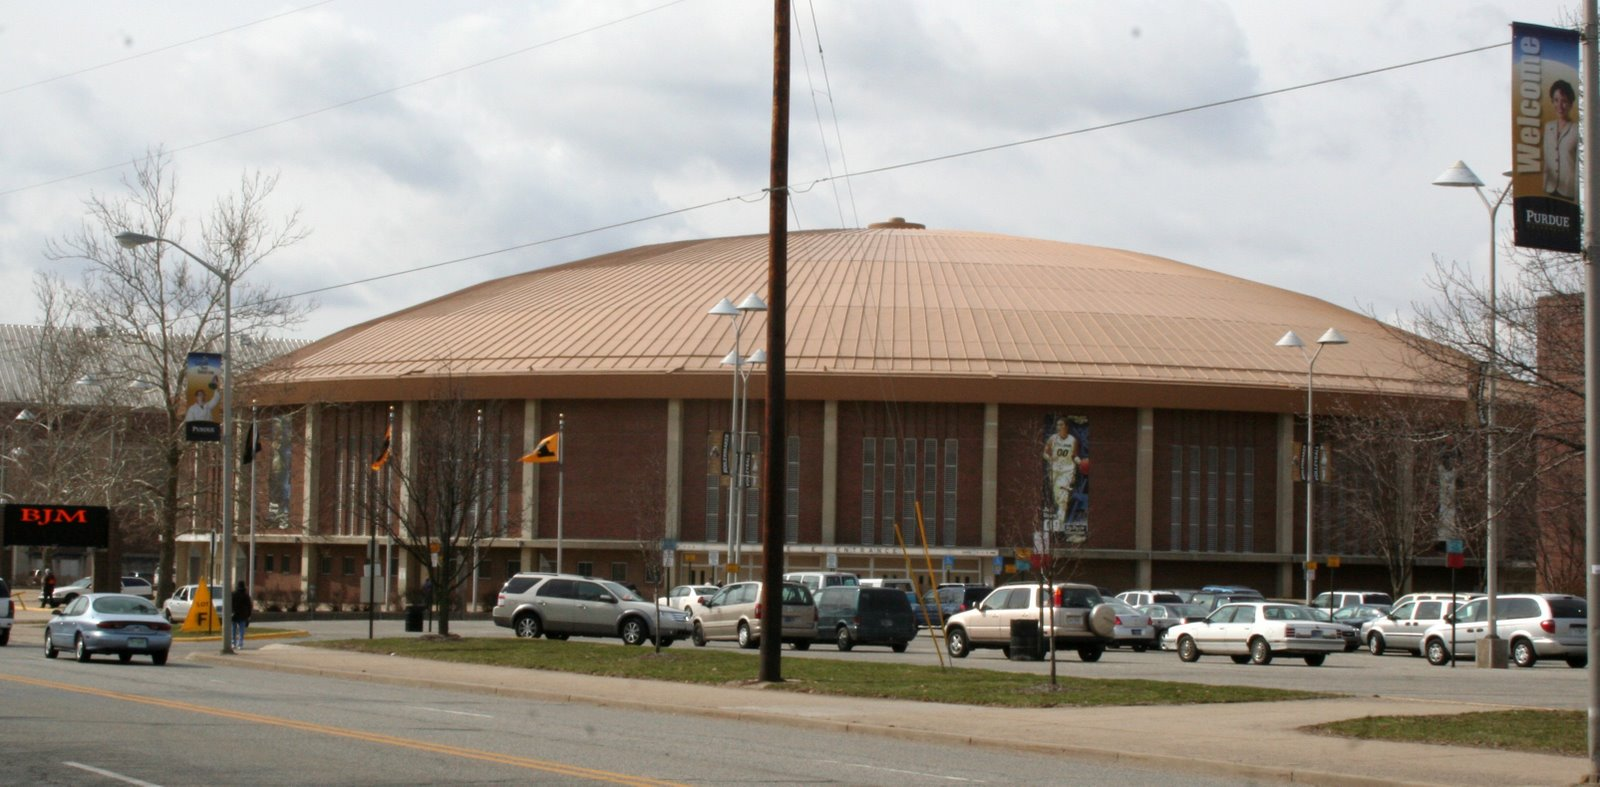 Mackey Arena in its original form, prior to the extensive renovations.